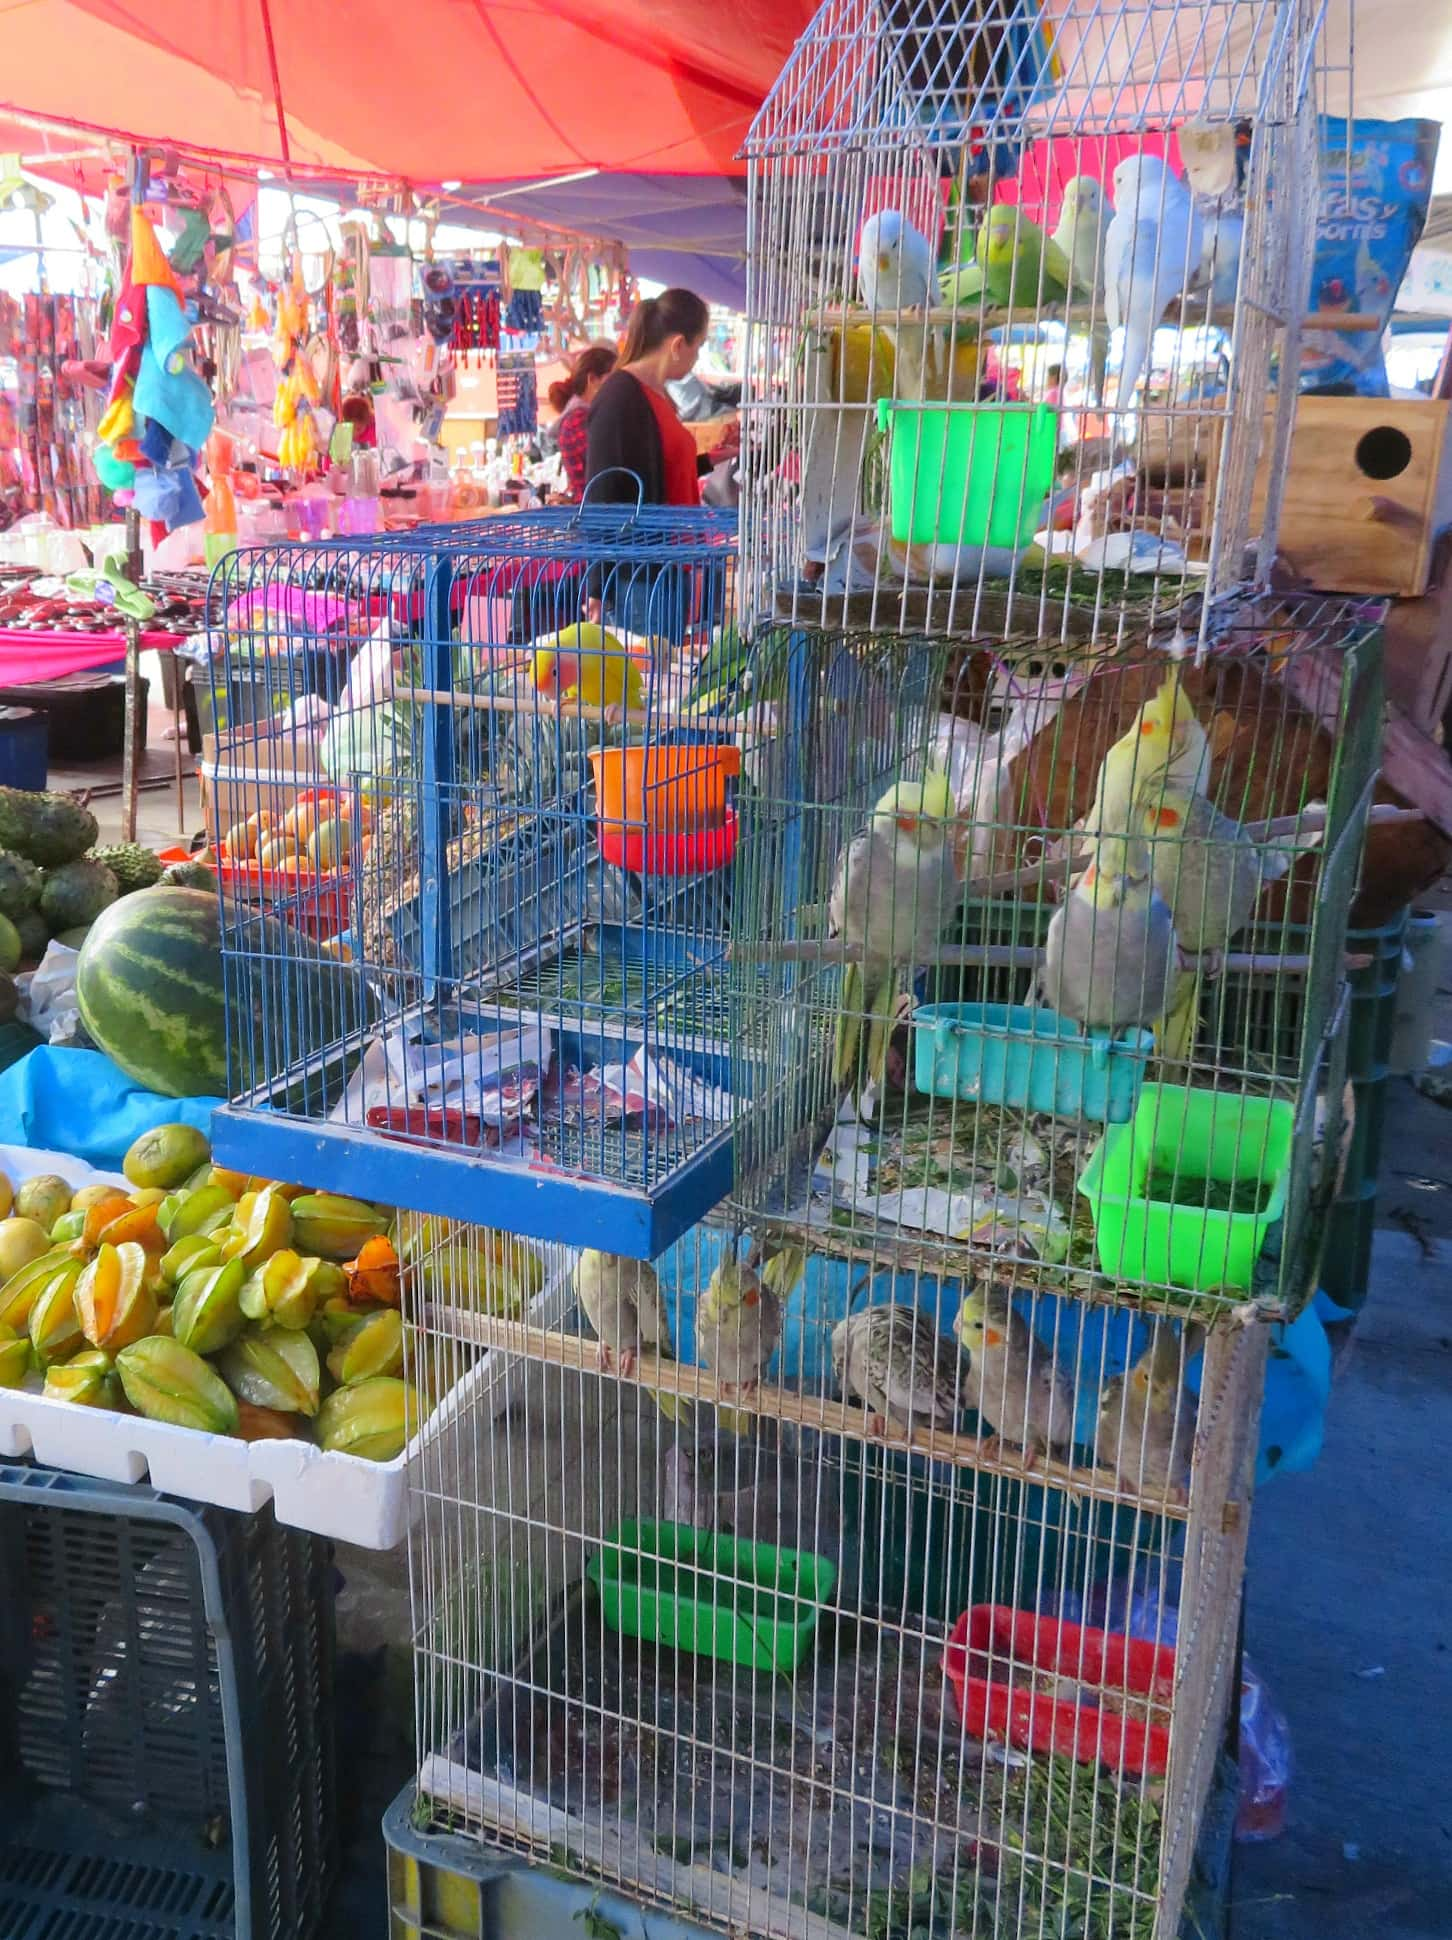 Pet birds for sale at Tianguis de Los Martes in San Miguel de Allende with kids